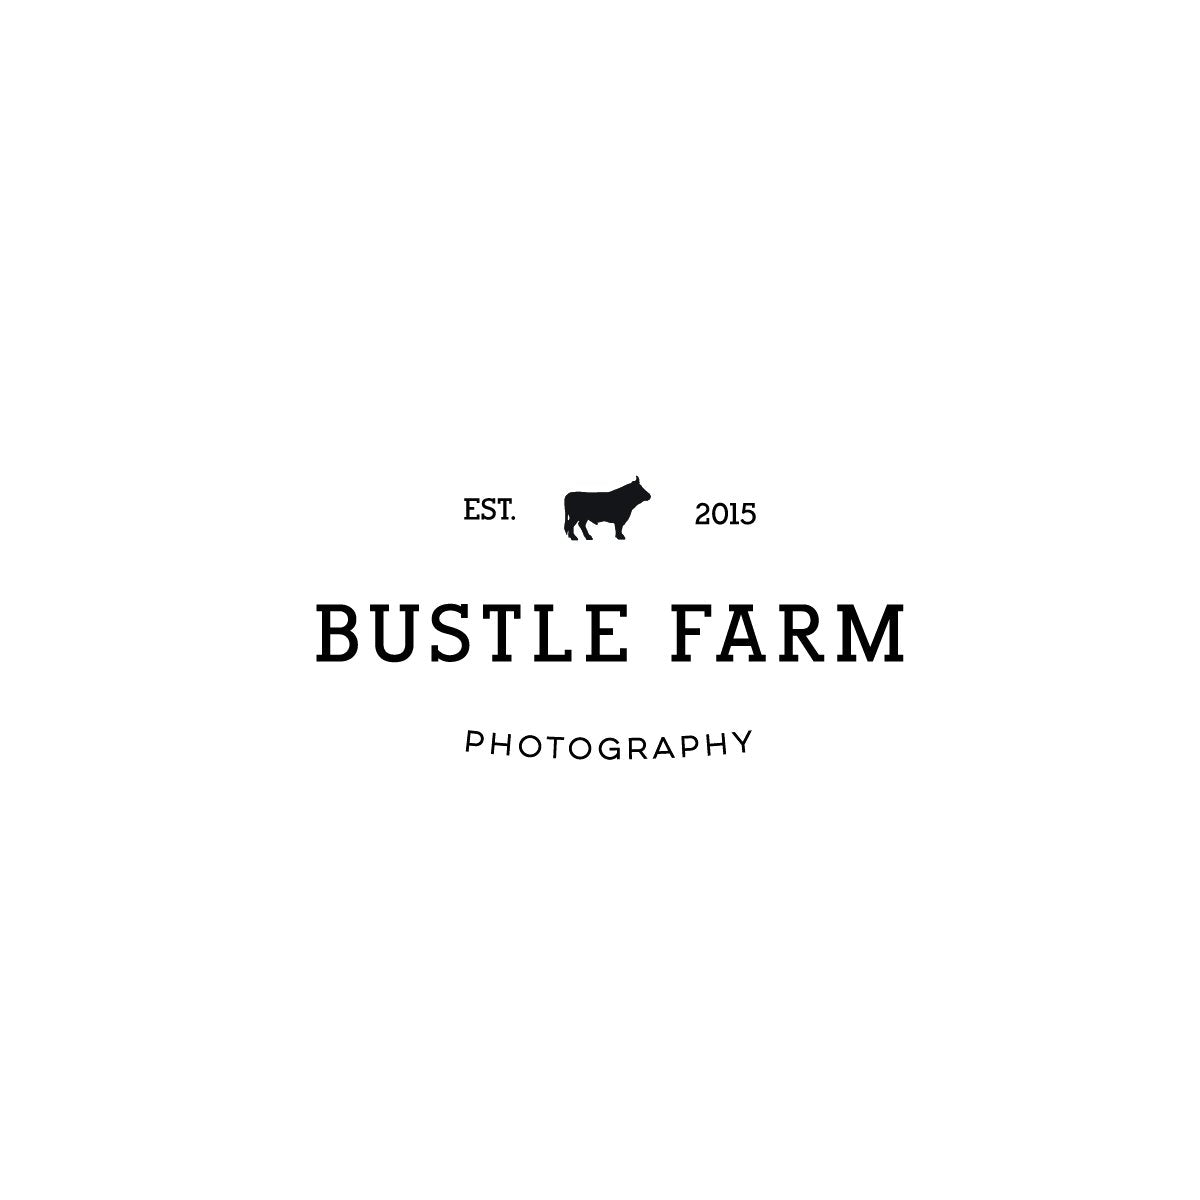 leanne and company bustle farm photography logo design charlotte nc